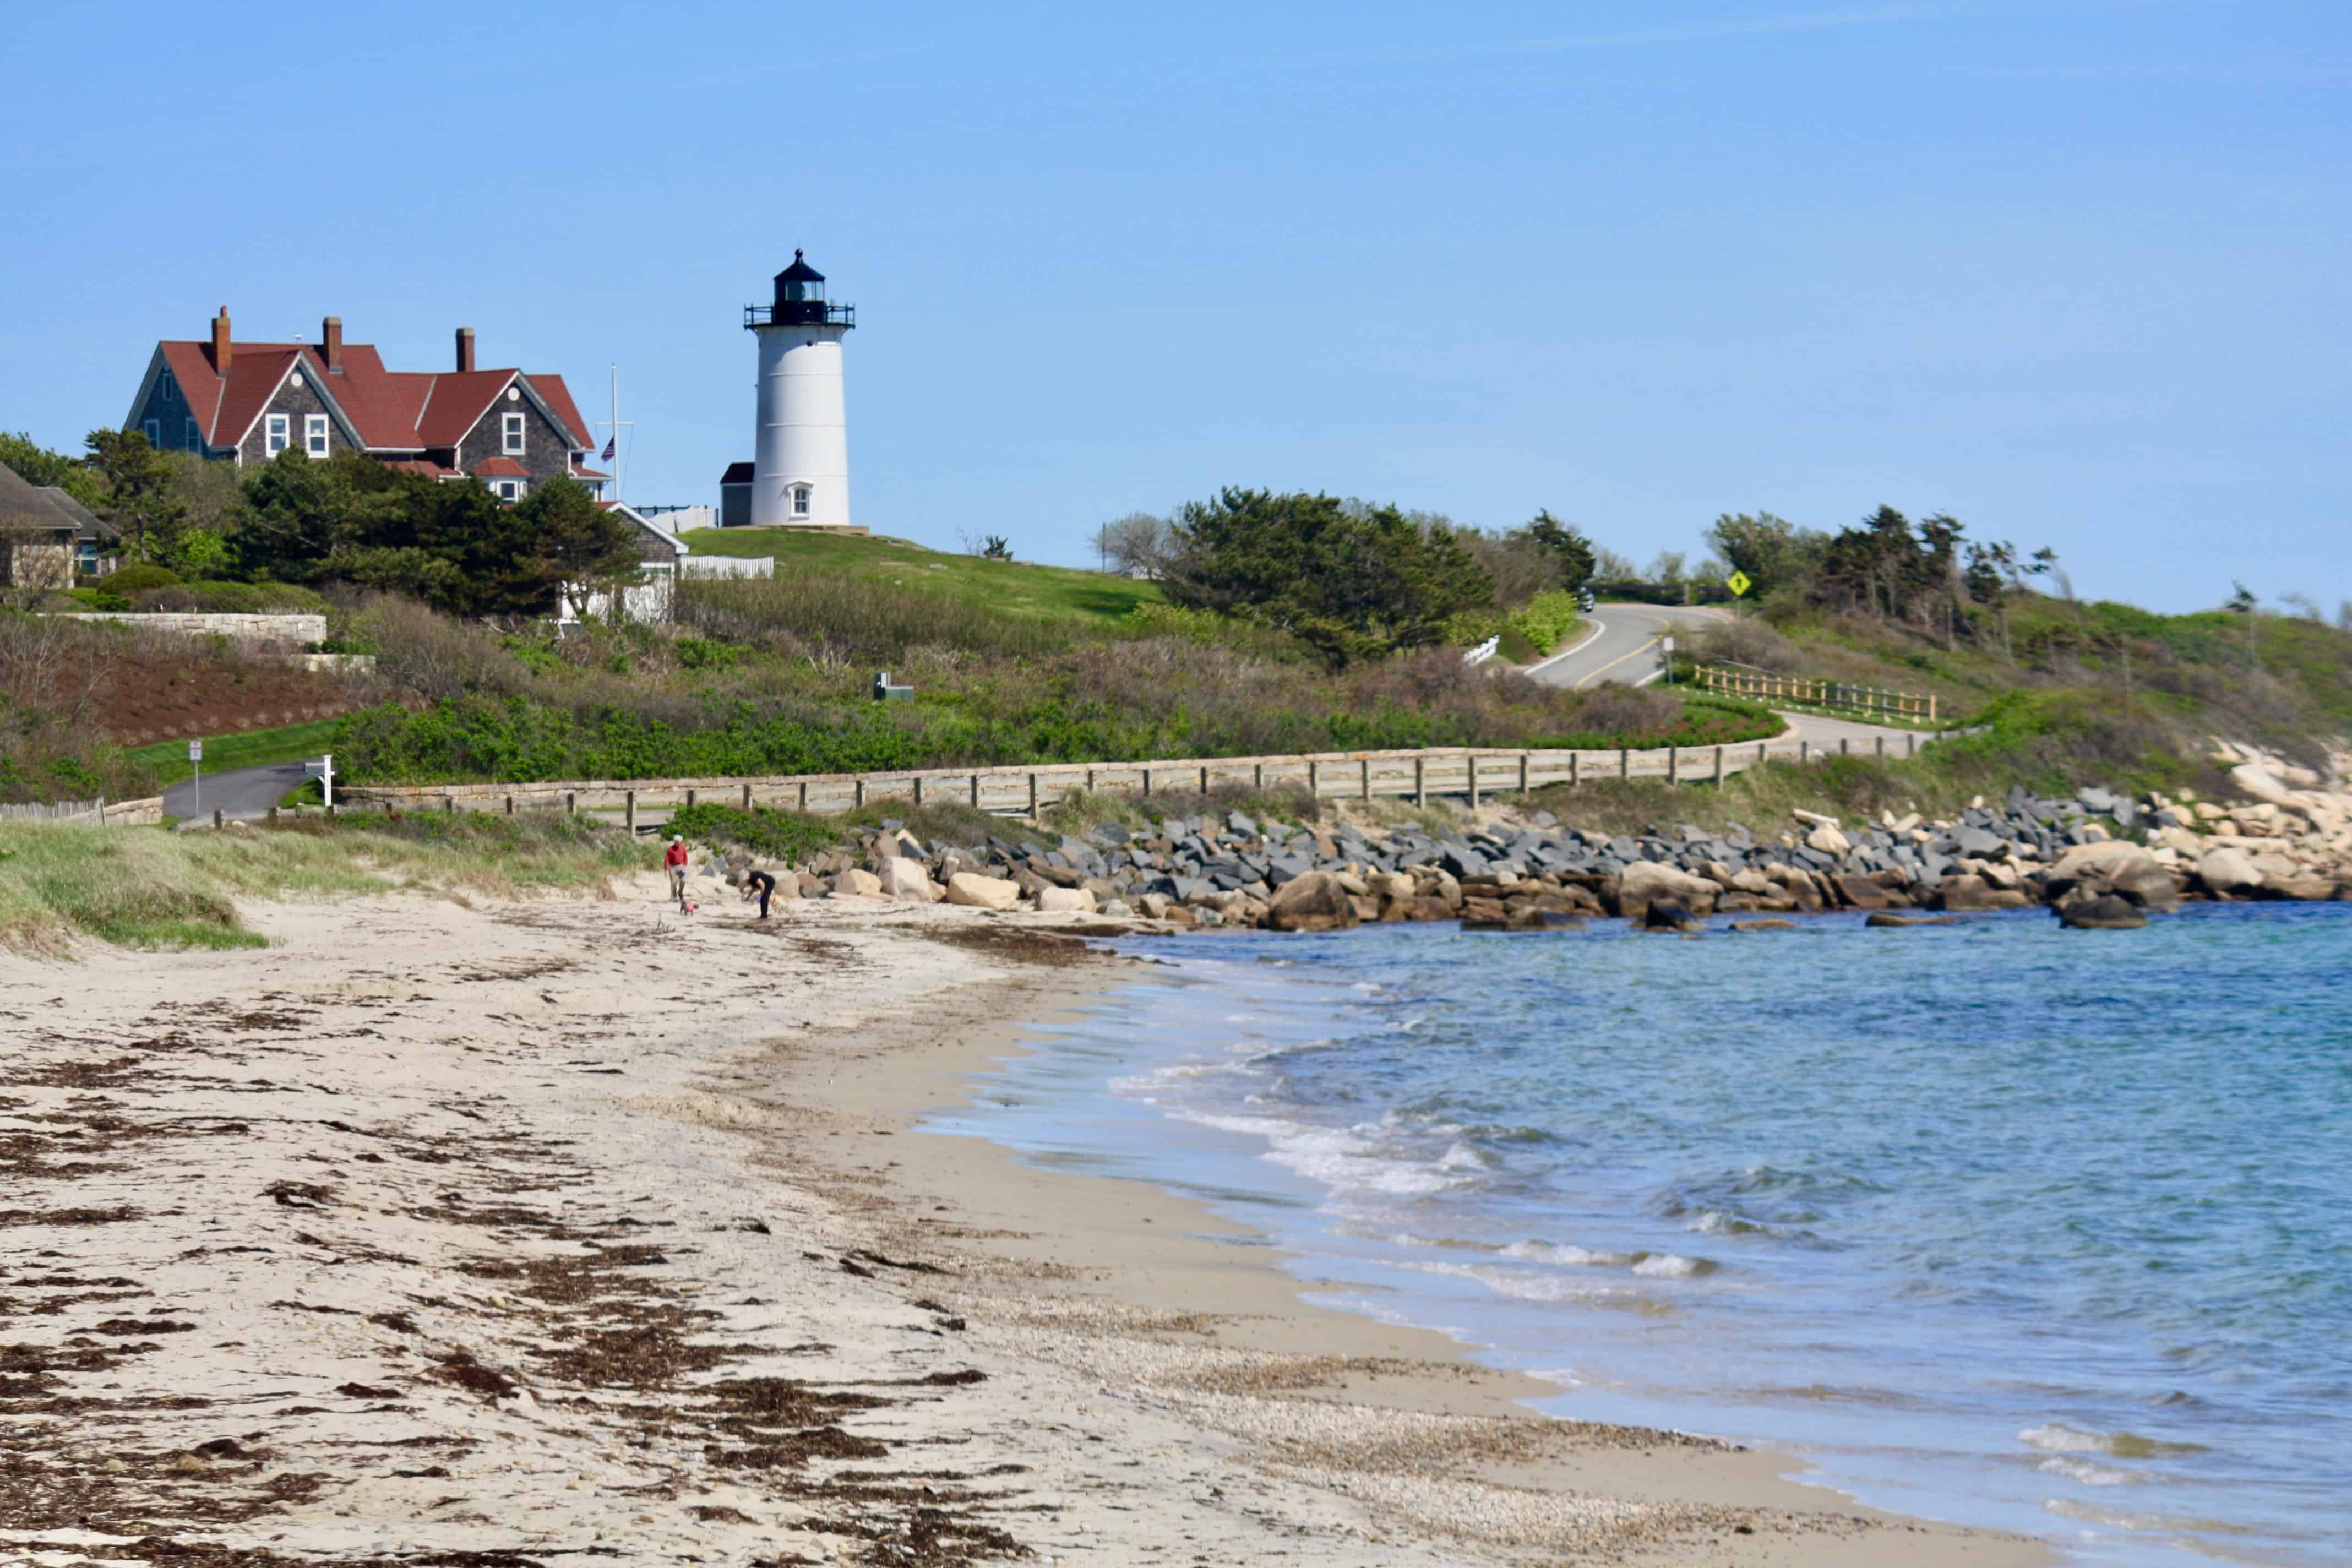 Luxury Cape Cod Inn  Cape Cod Vacation Packages  The